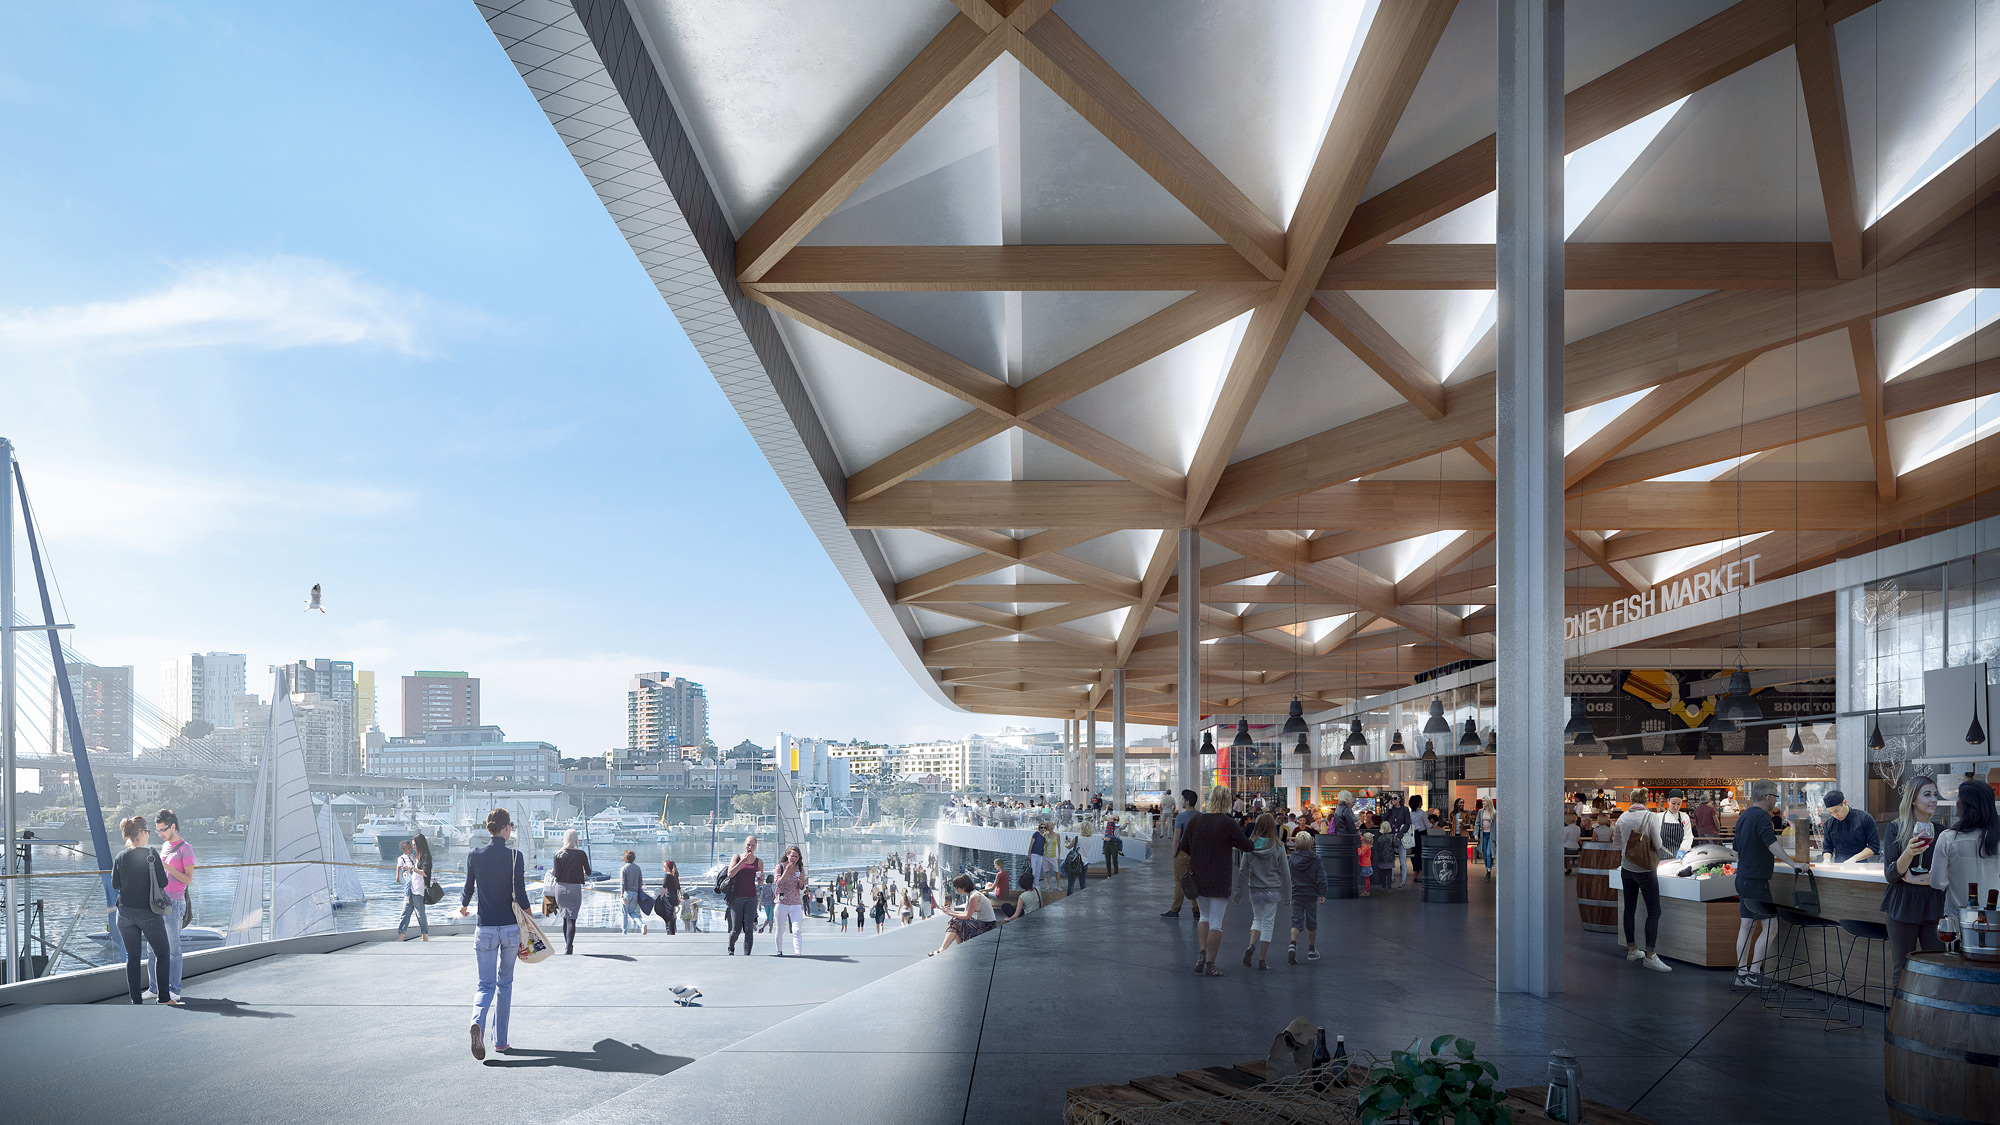 Sydney fish market. a world-class tourist and cultural attraction. | 3XN